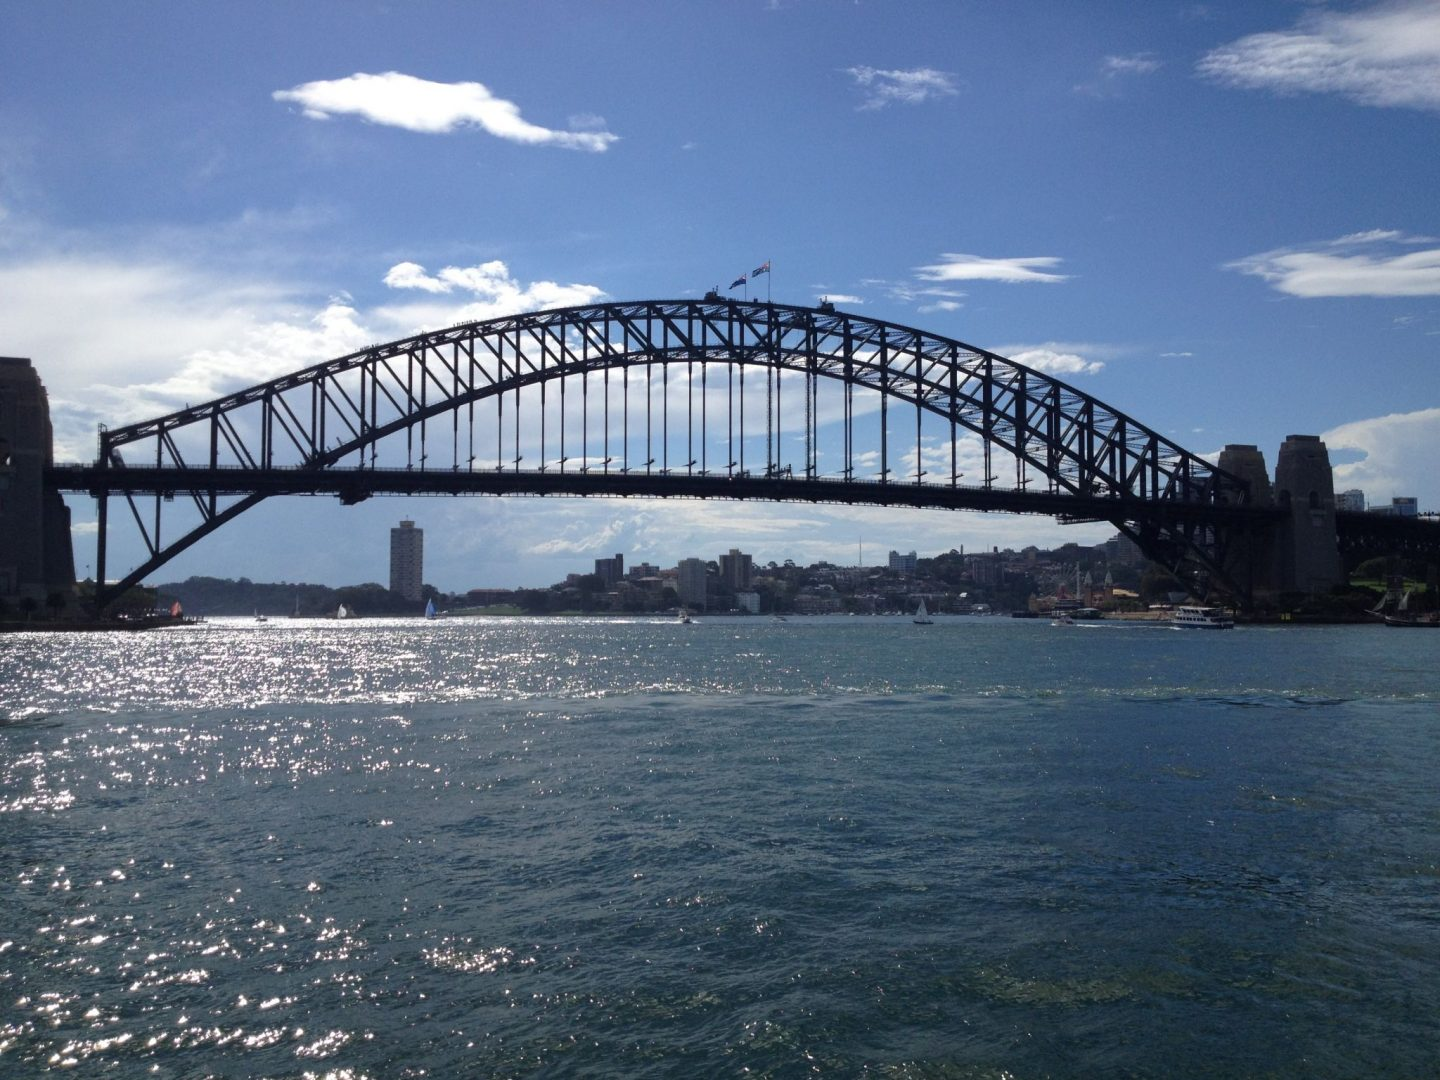 Sydney Harbour Bridge in the summer